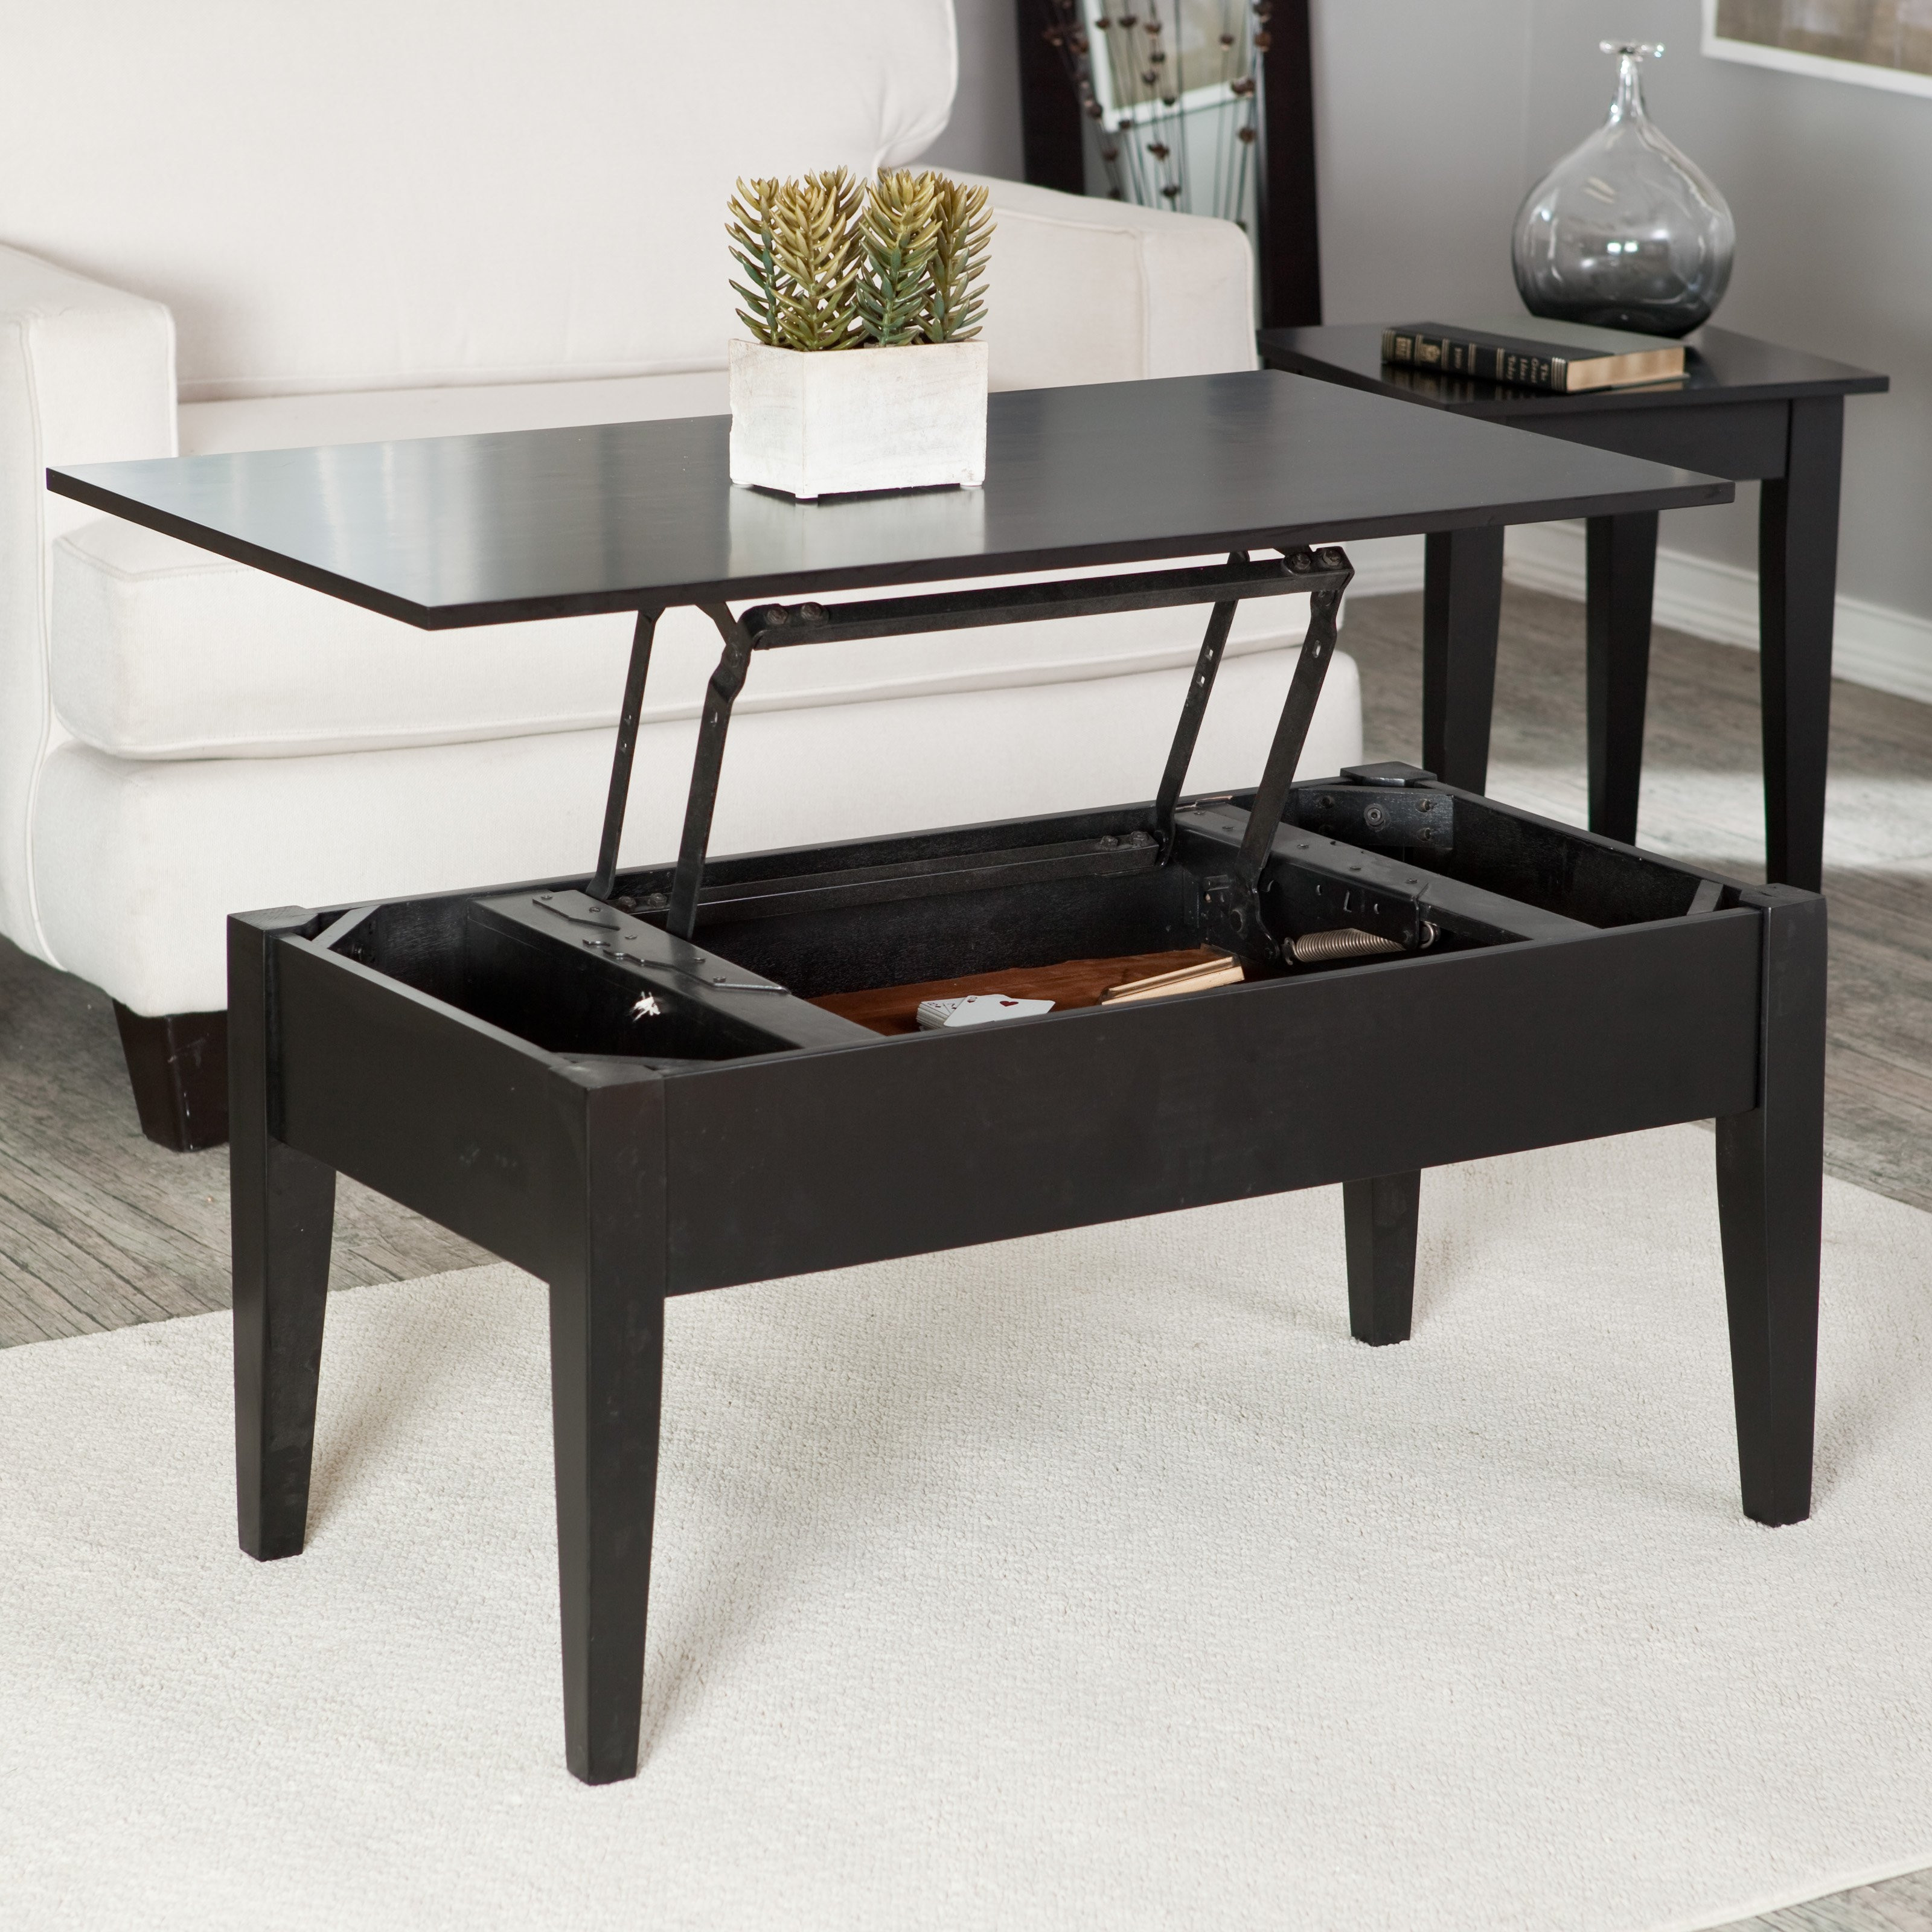 Best ideas about Coffee Table Lift Top . Save or Pin Small space furniture 12 smart s for tiny apartments Now.